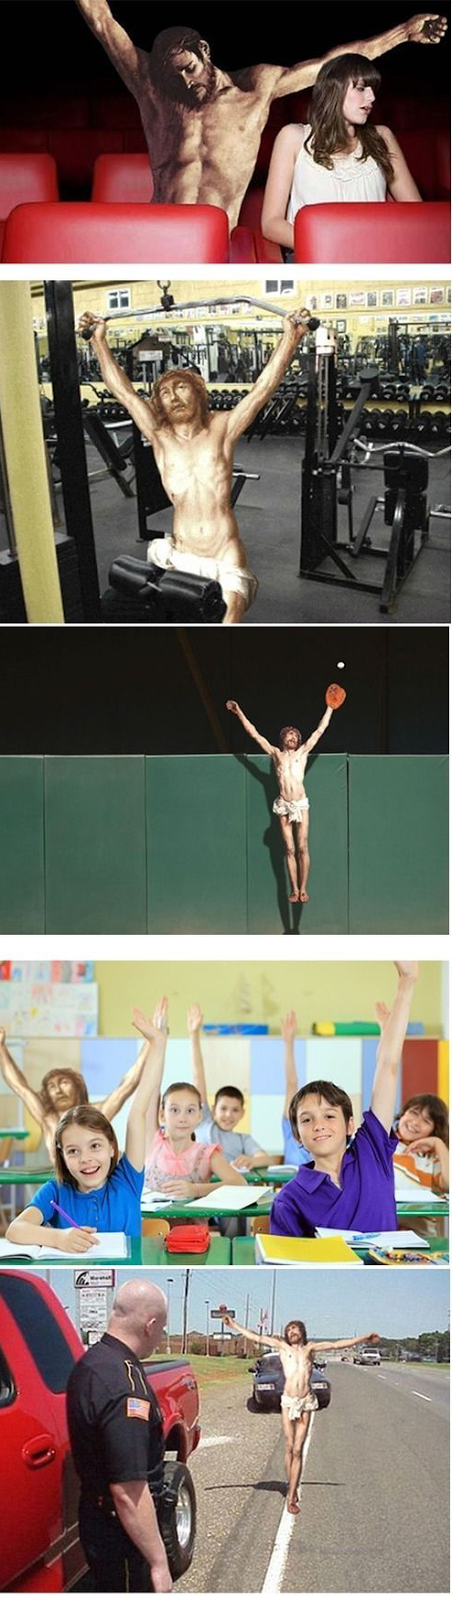 Funny Crucified Jesus Poses - Baseball, school answer, gym